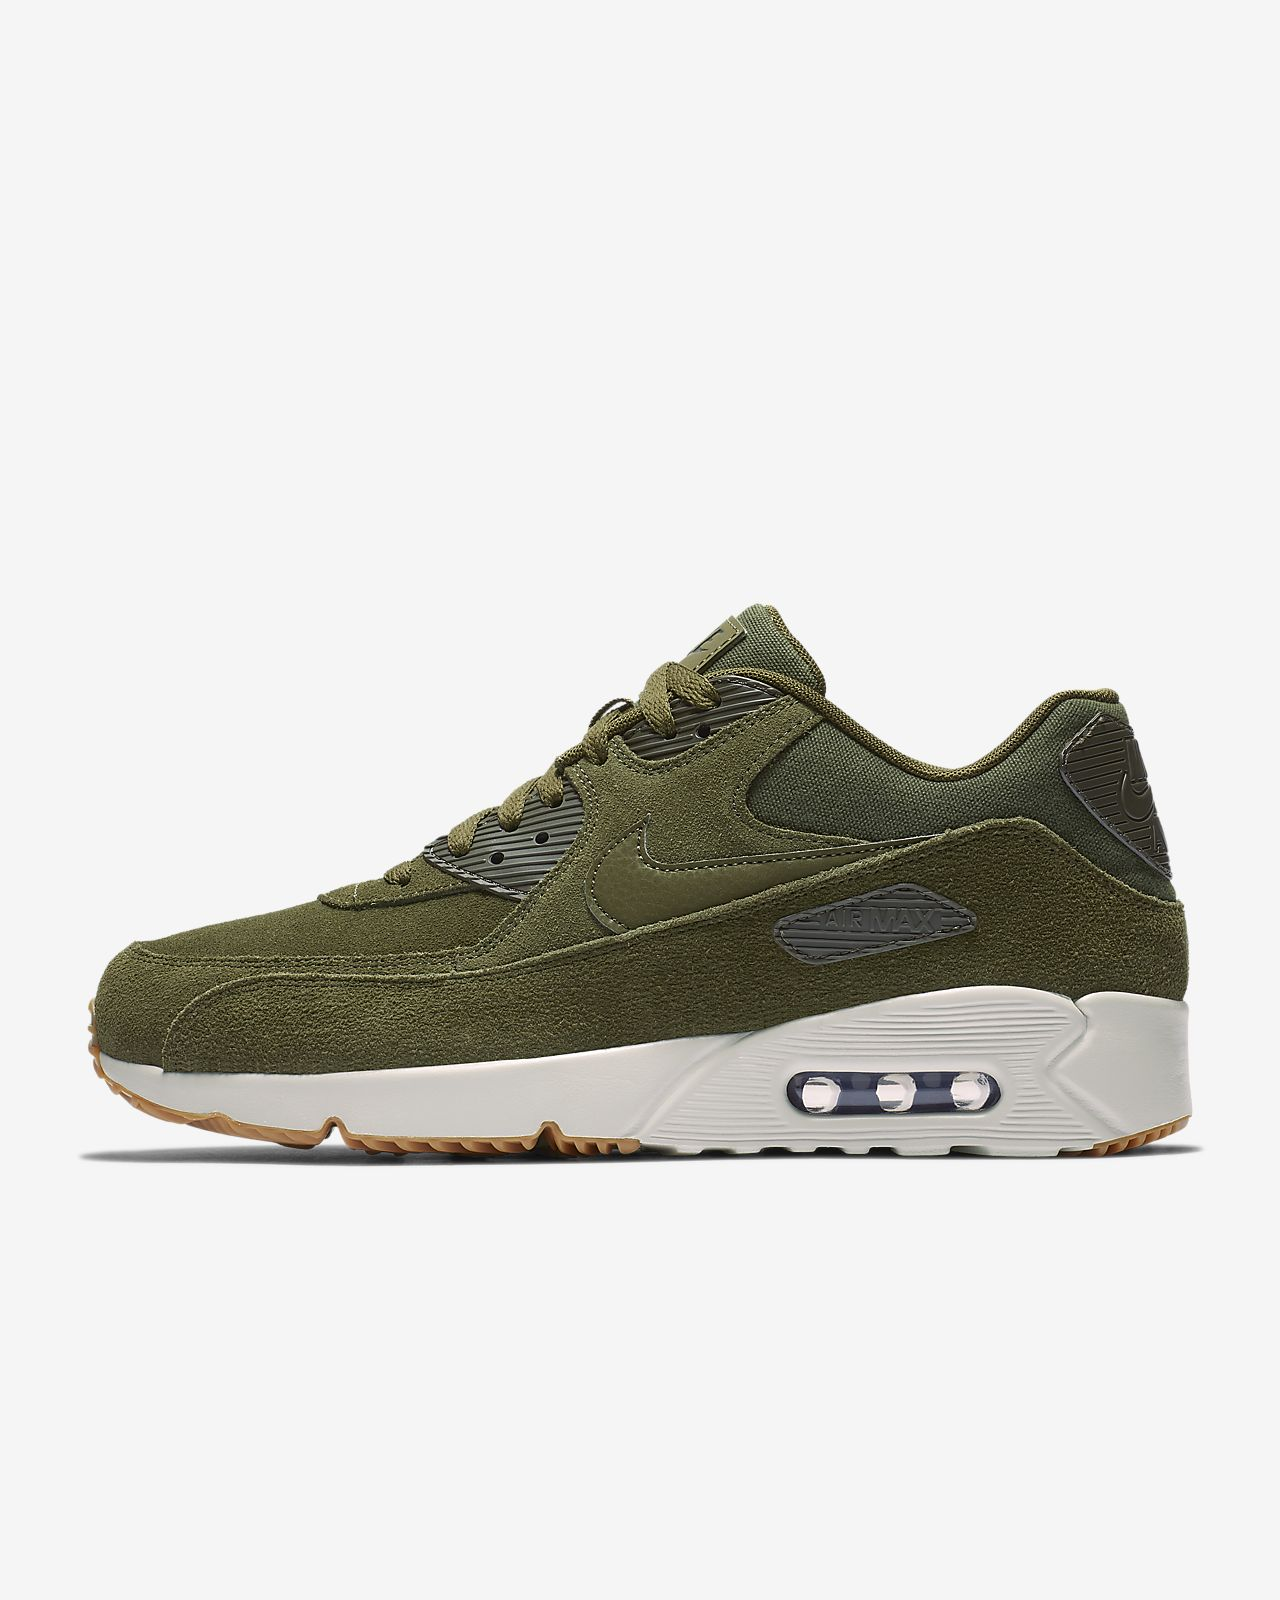 wholesale dealer 0d162 02815 ... Nike Air Max 90 Ultra 2.0 Men s Shoe